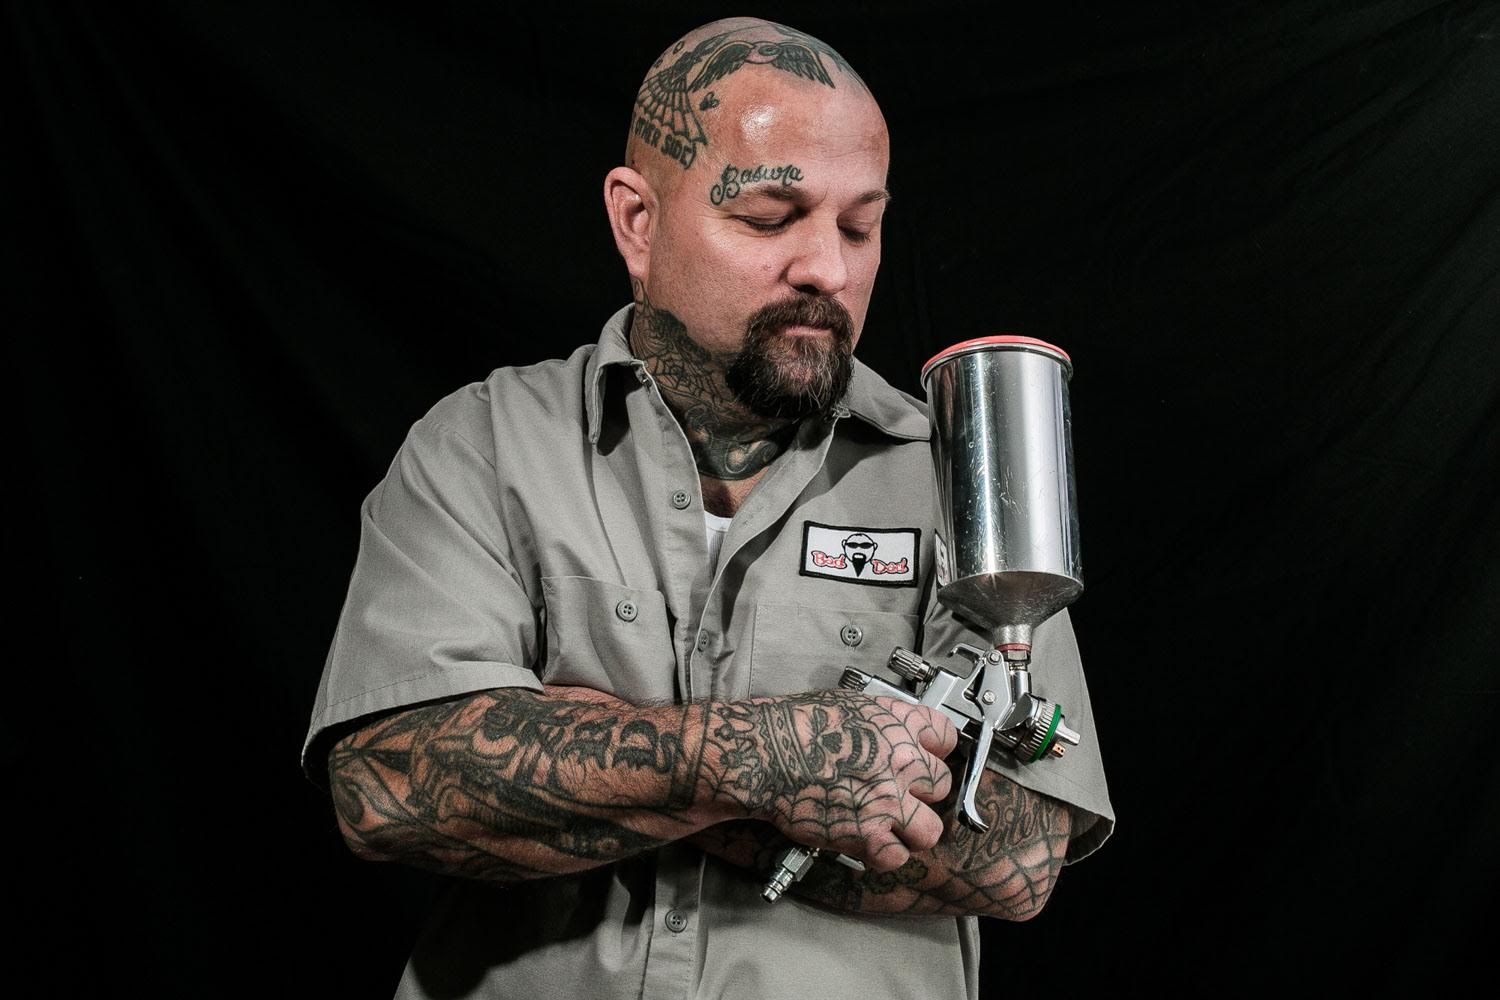 Playlists Bad Dad Custom Bagger Parts For Your 2015 Street Glide Wiring Diagram Presents Gary Queen Today Of Otherside Customs In Dallas Tx Came To Indiana Hang Out With Us Is An Extremely Talented Painter